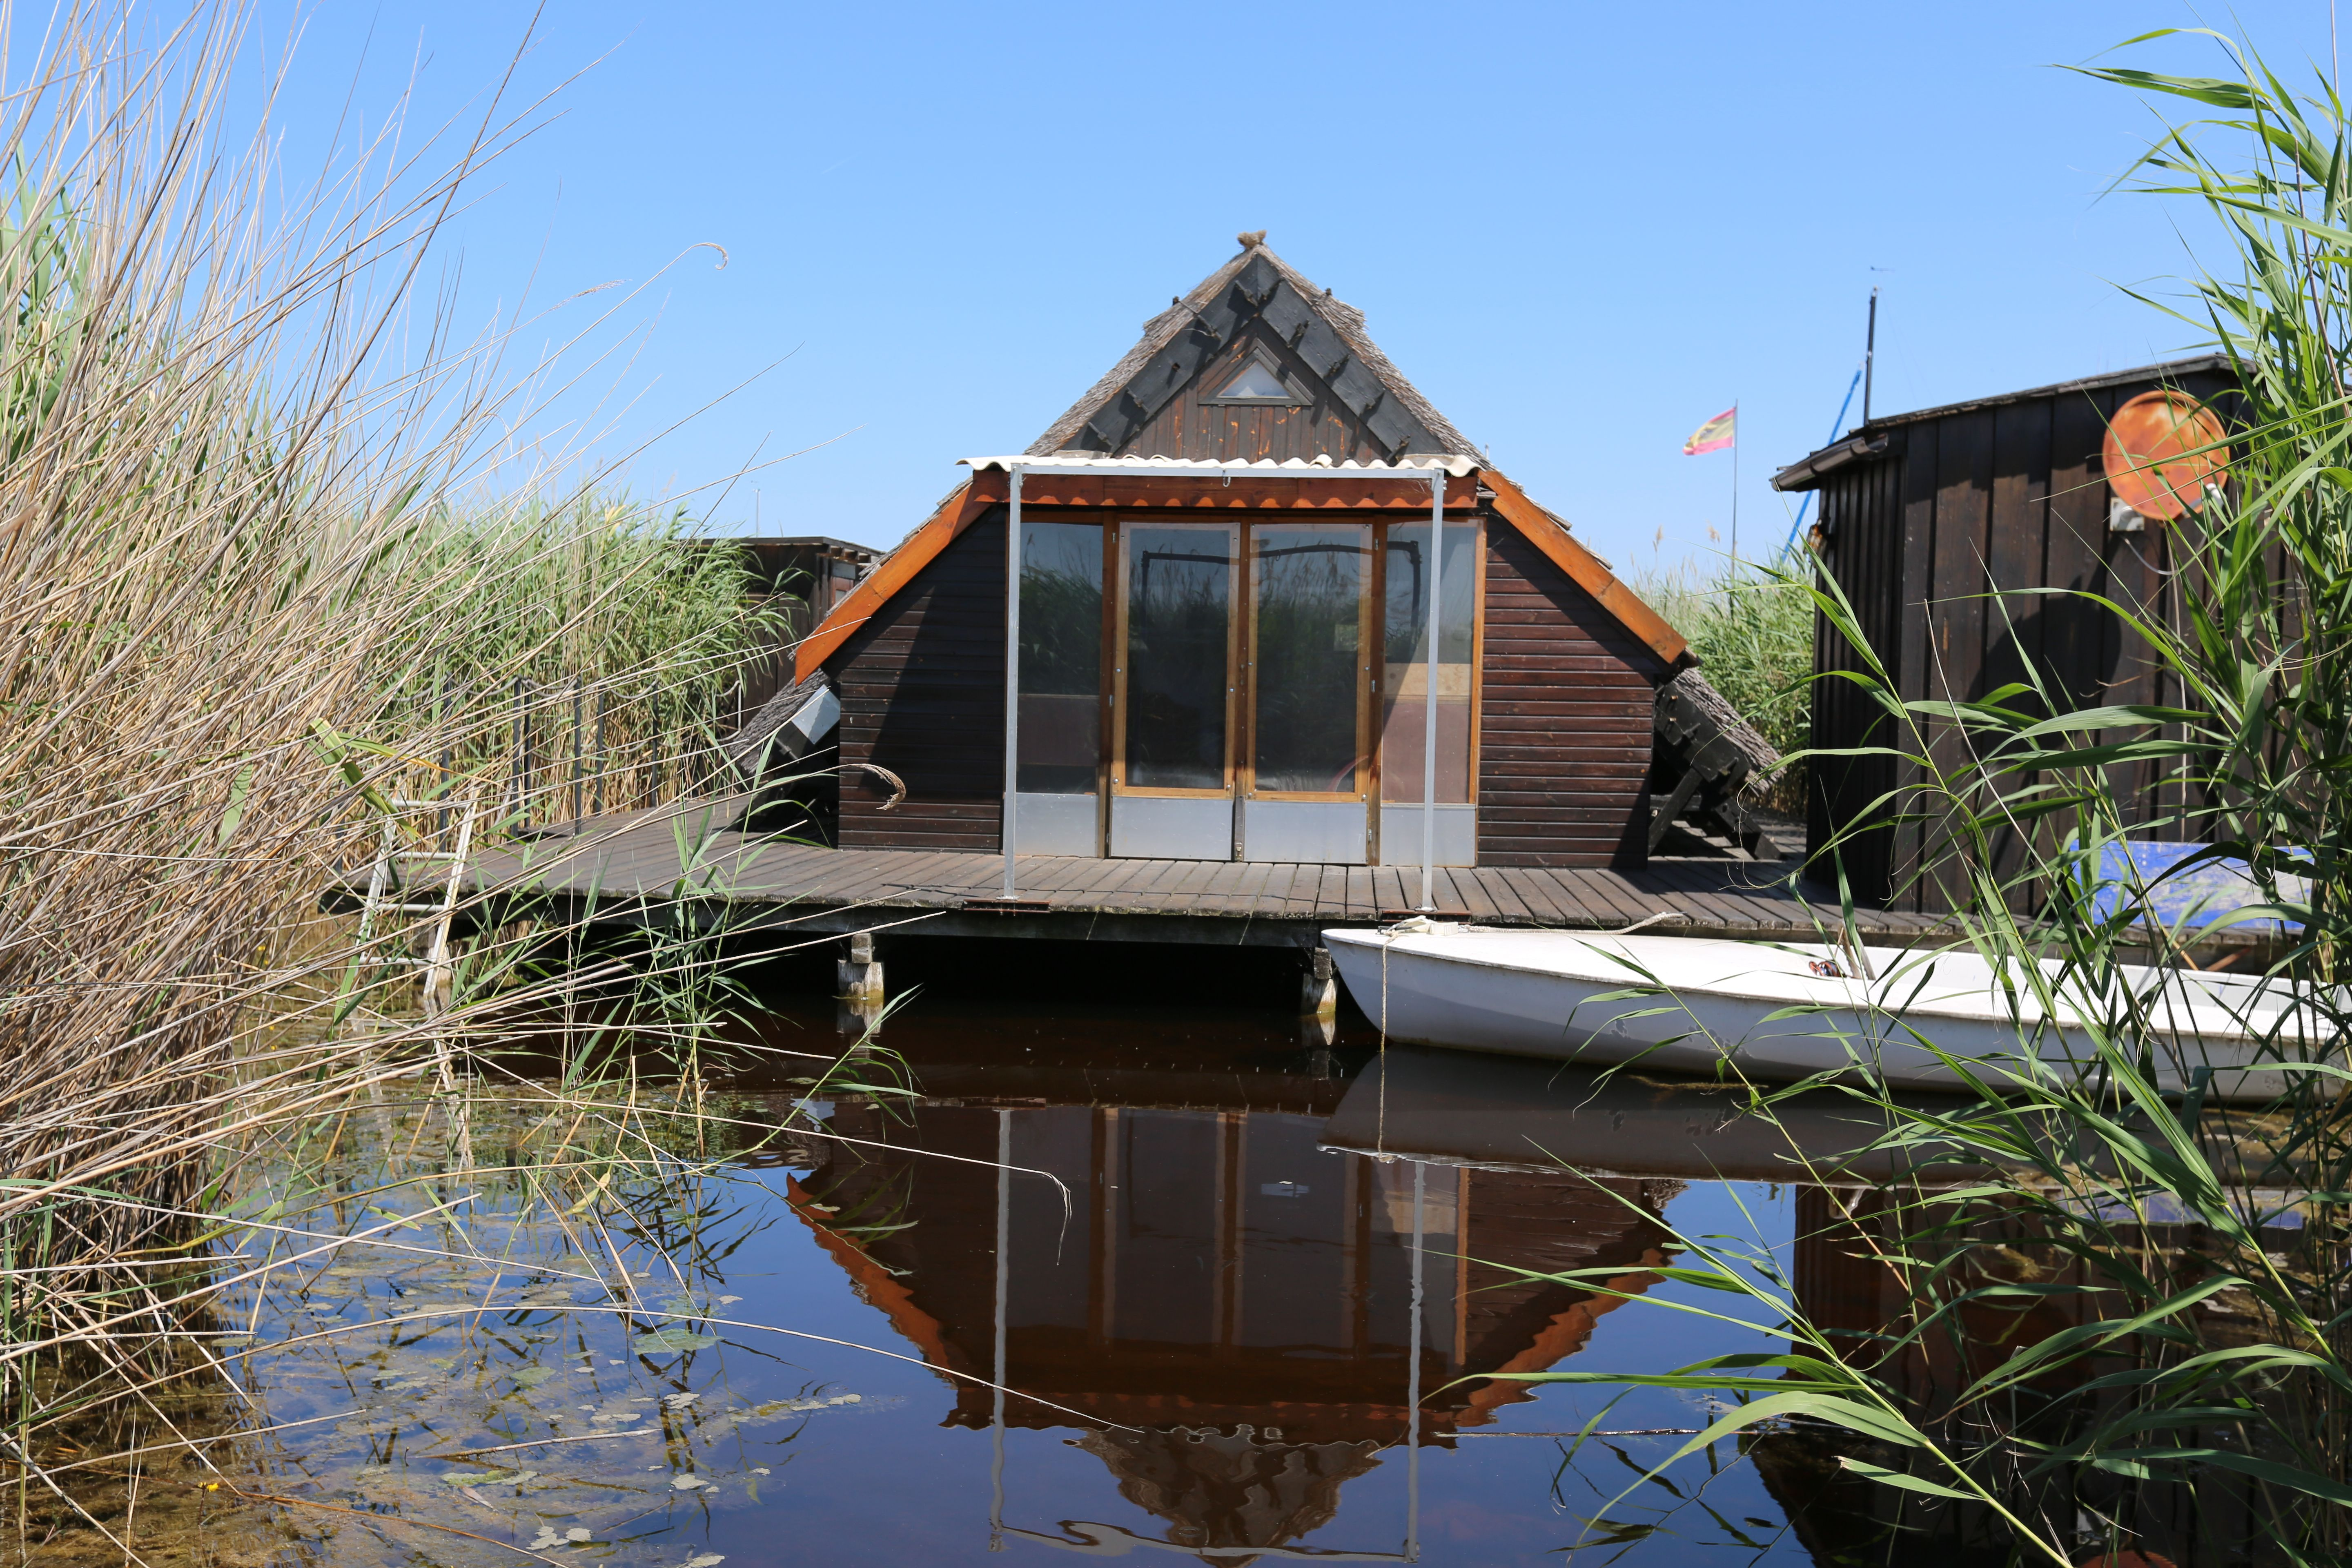 Seehutte In Rust Am Neusiedlersee Burgenland Style At Home Pfahlbau Seehaus